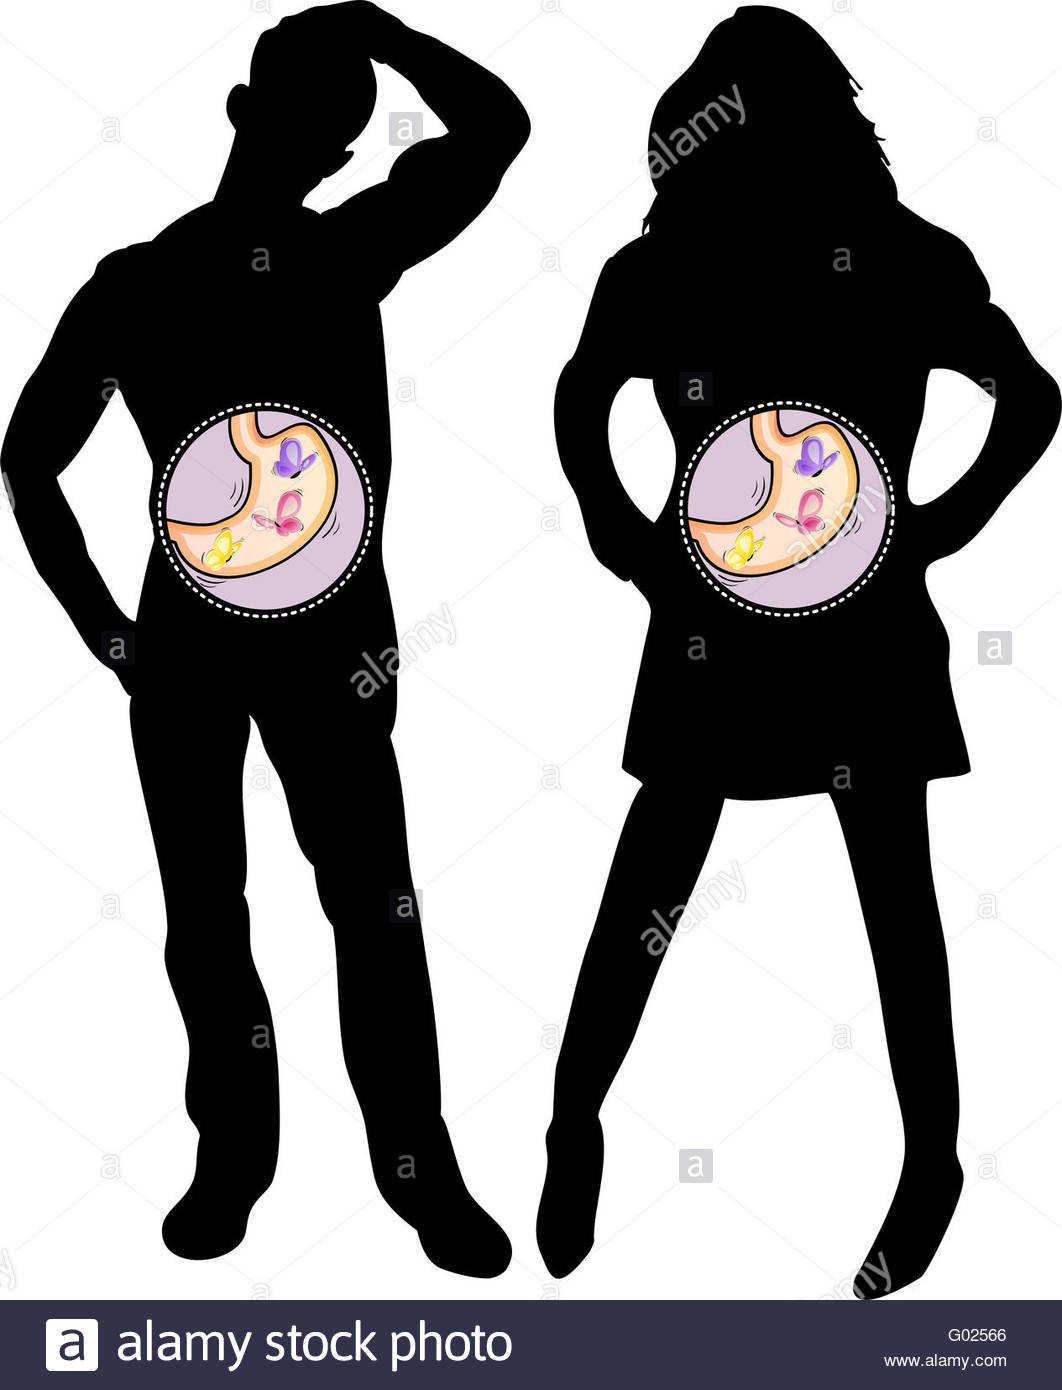 1062x1390 Girl And Boy Silhouette With Butterflies In The Stomach. Editable